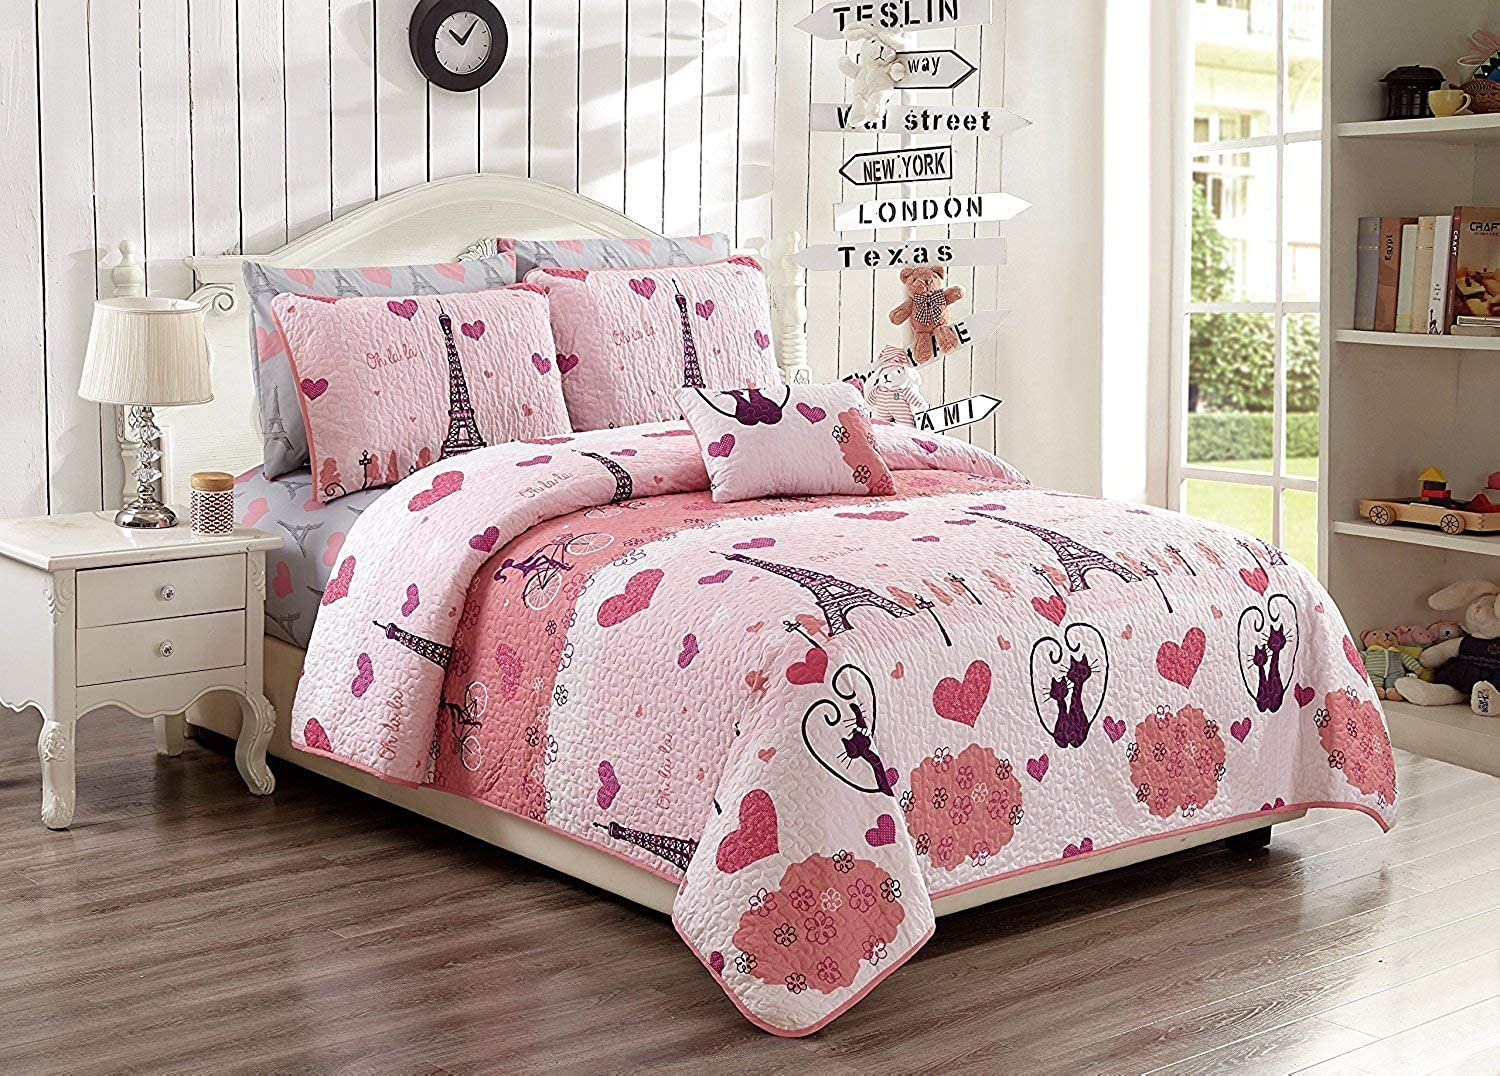 Elegant Home Paris Eiffel Tower Bonjour Design Pink White Printed Reversible Cozy colorful 4 Piece Quilt Bedspread Set with Pillowcases and Decorative Pillow for Kids Girls (Full Queen)